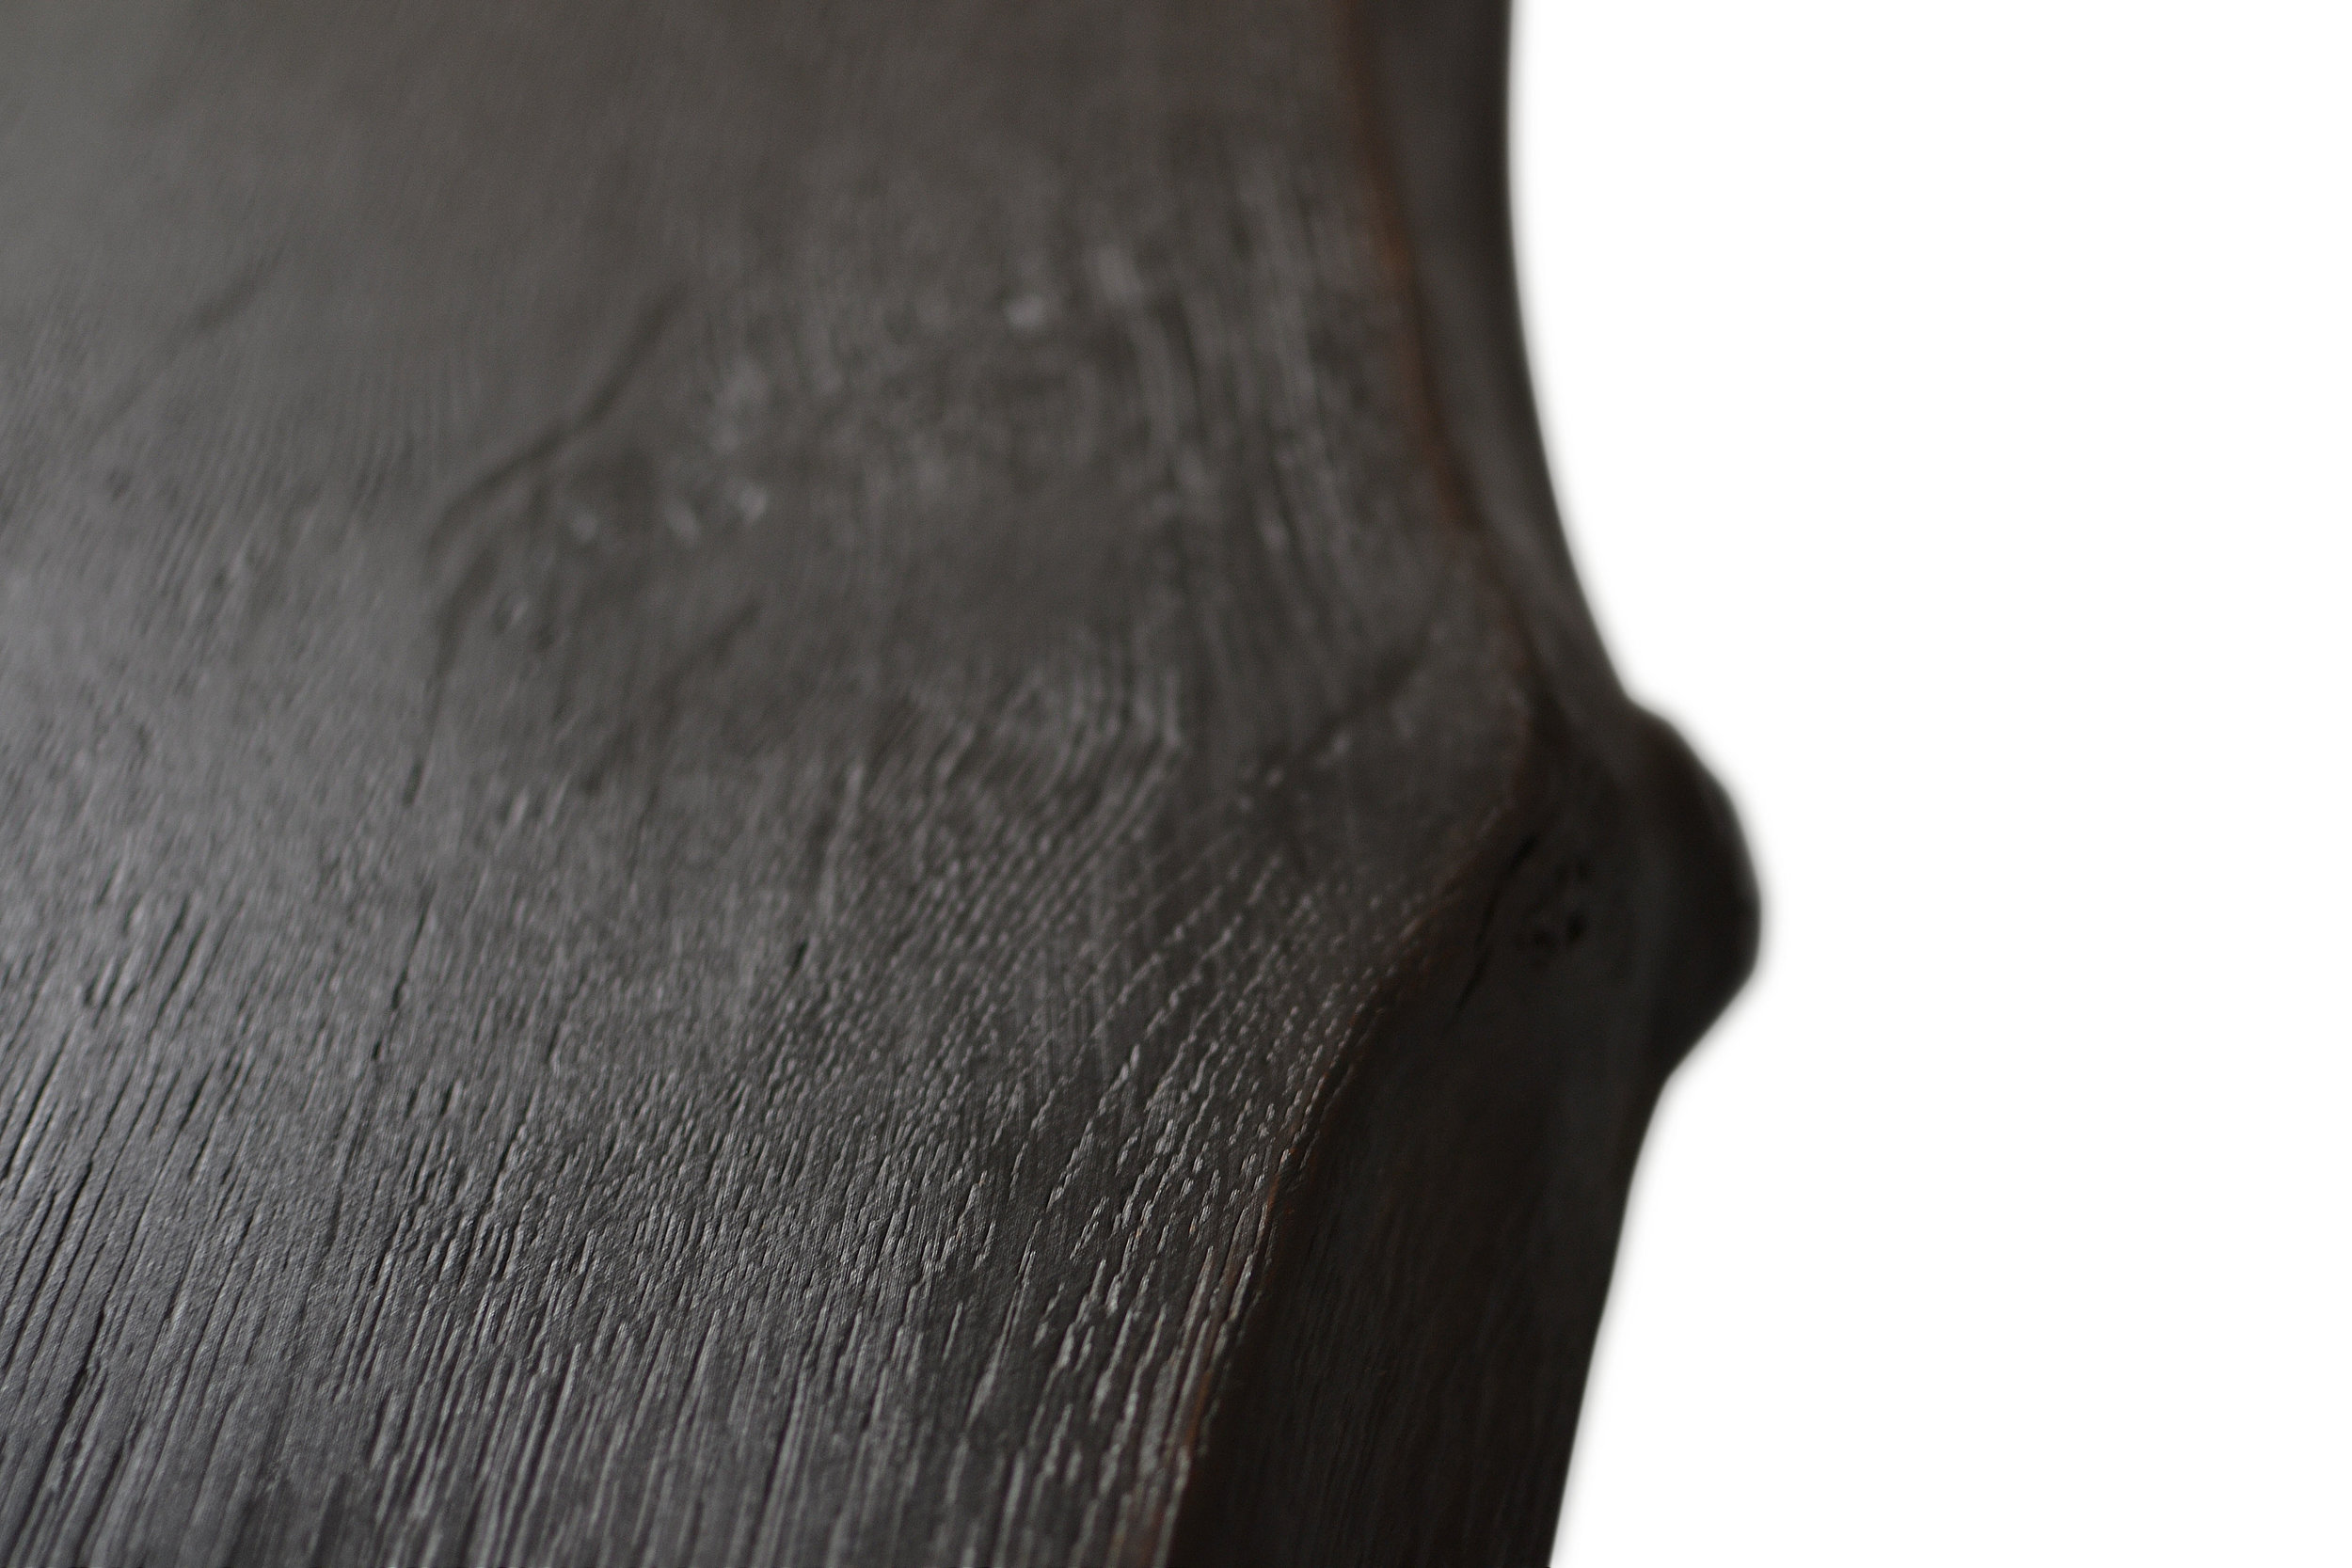 Etz & Steel Europa Live Edge Table Close Up 1.JPG